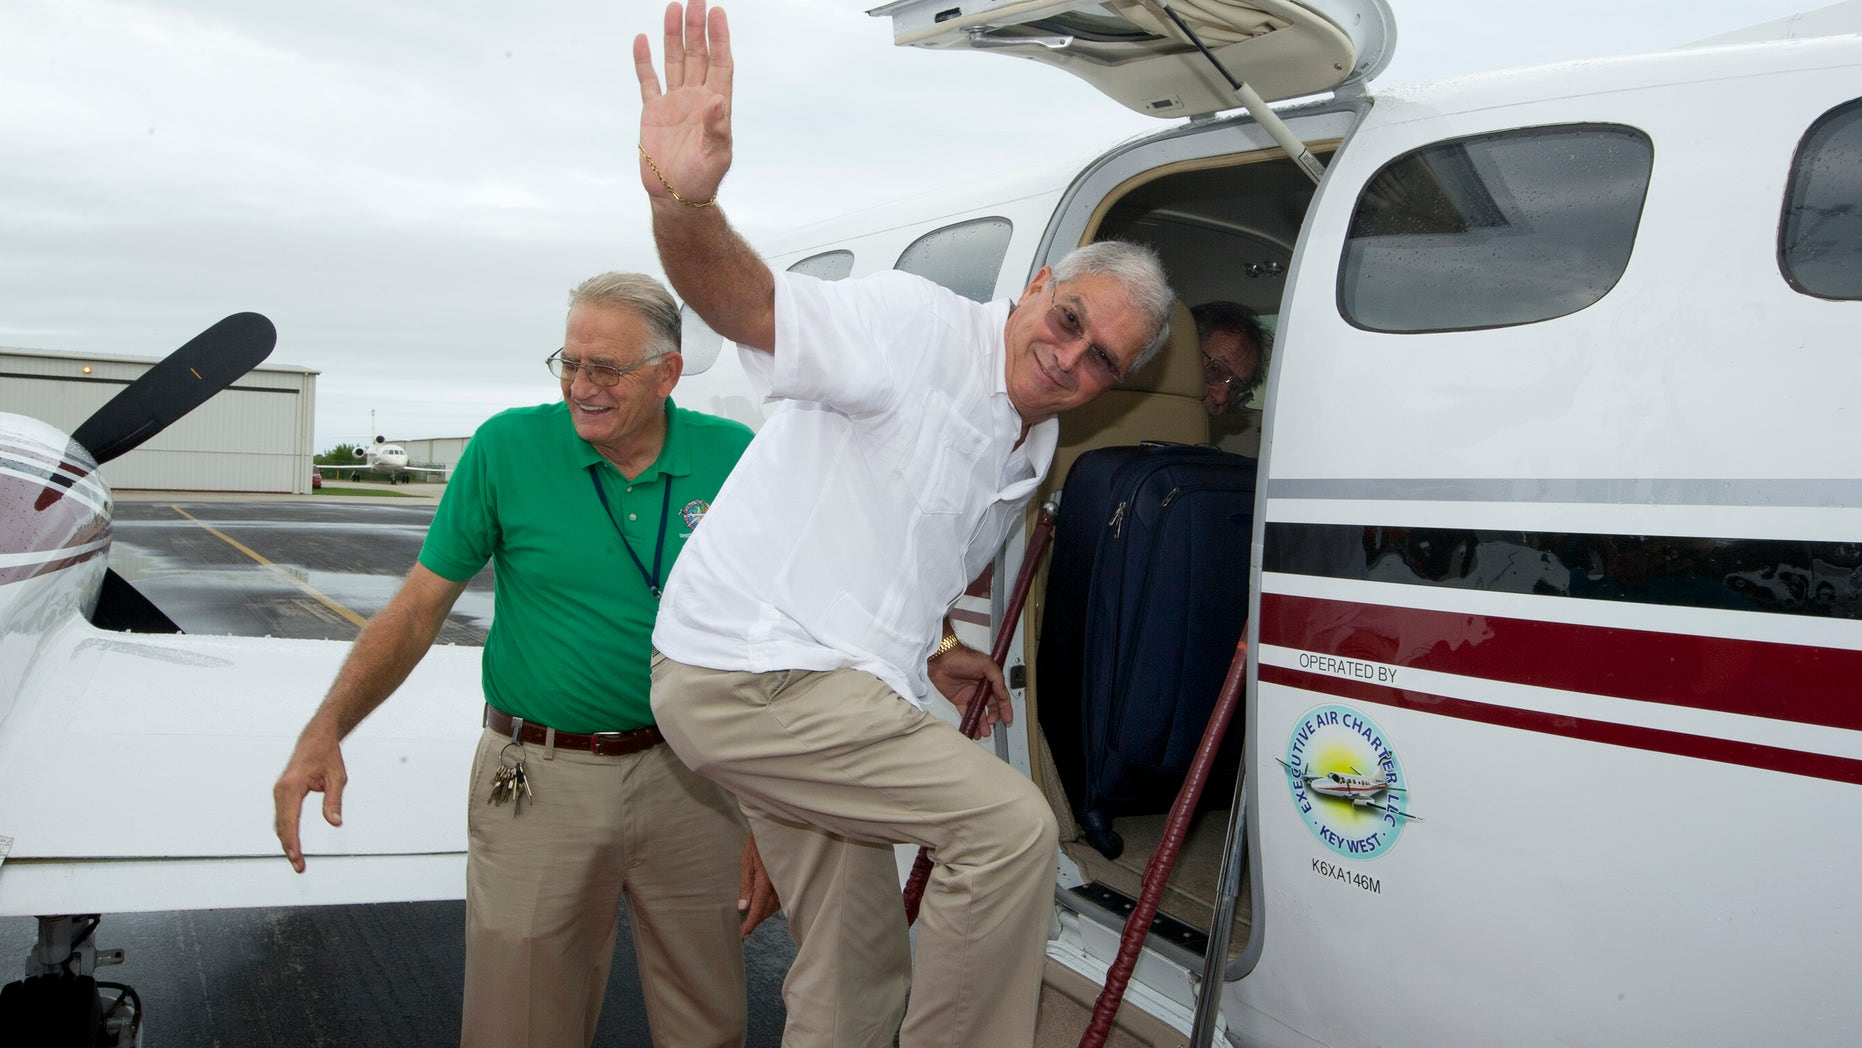 In this photo provided by the Florida Keys News Bureau, Key West Mayor Craig Cates, right, waves goodbye as he boards a chartered aircraft at Key West International Airport Monday, Dec. 30, 2013, that flew to Havana, Cuba. The trip was the first legal commercial passenger flight from Key West to Cuba in more than 50 years and carried passengers who will remain until Jan. 3, 2014. It was organized by the Florida Keys Tropical Research Ecological Exchange Institute under a people-to-people cultural exchange license. Cates accompanied the passengers but did not stay in Cuba and returned to Key West. At left is Monroe County Airports Director Peter Horton. (AP Photo/Florida Keys News Bureau)